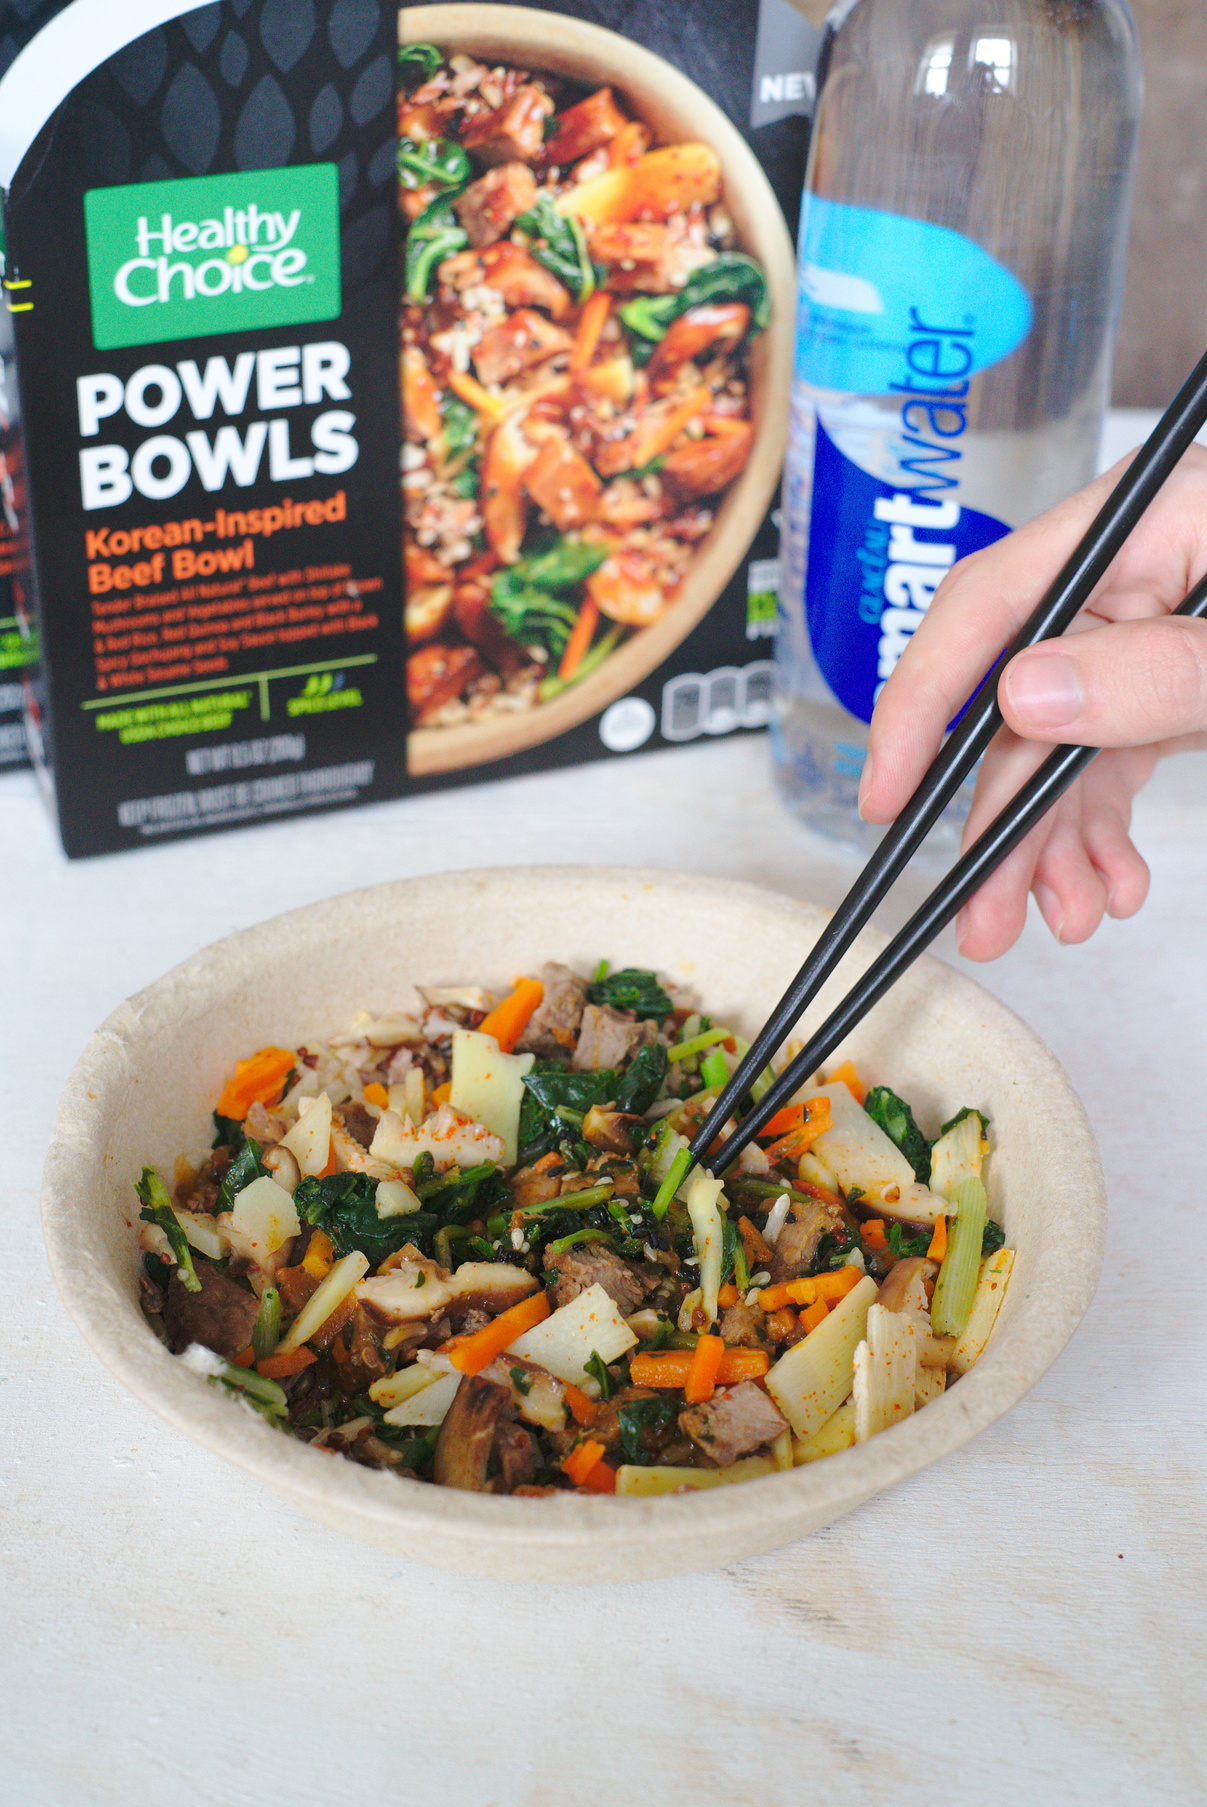 Chopsticks in Healthy Choice Korean-Inspired Beef Bowl with smartwater